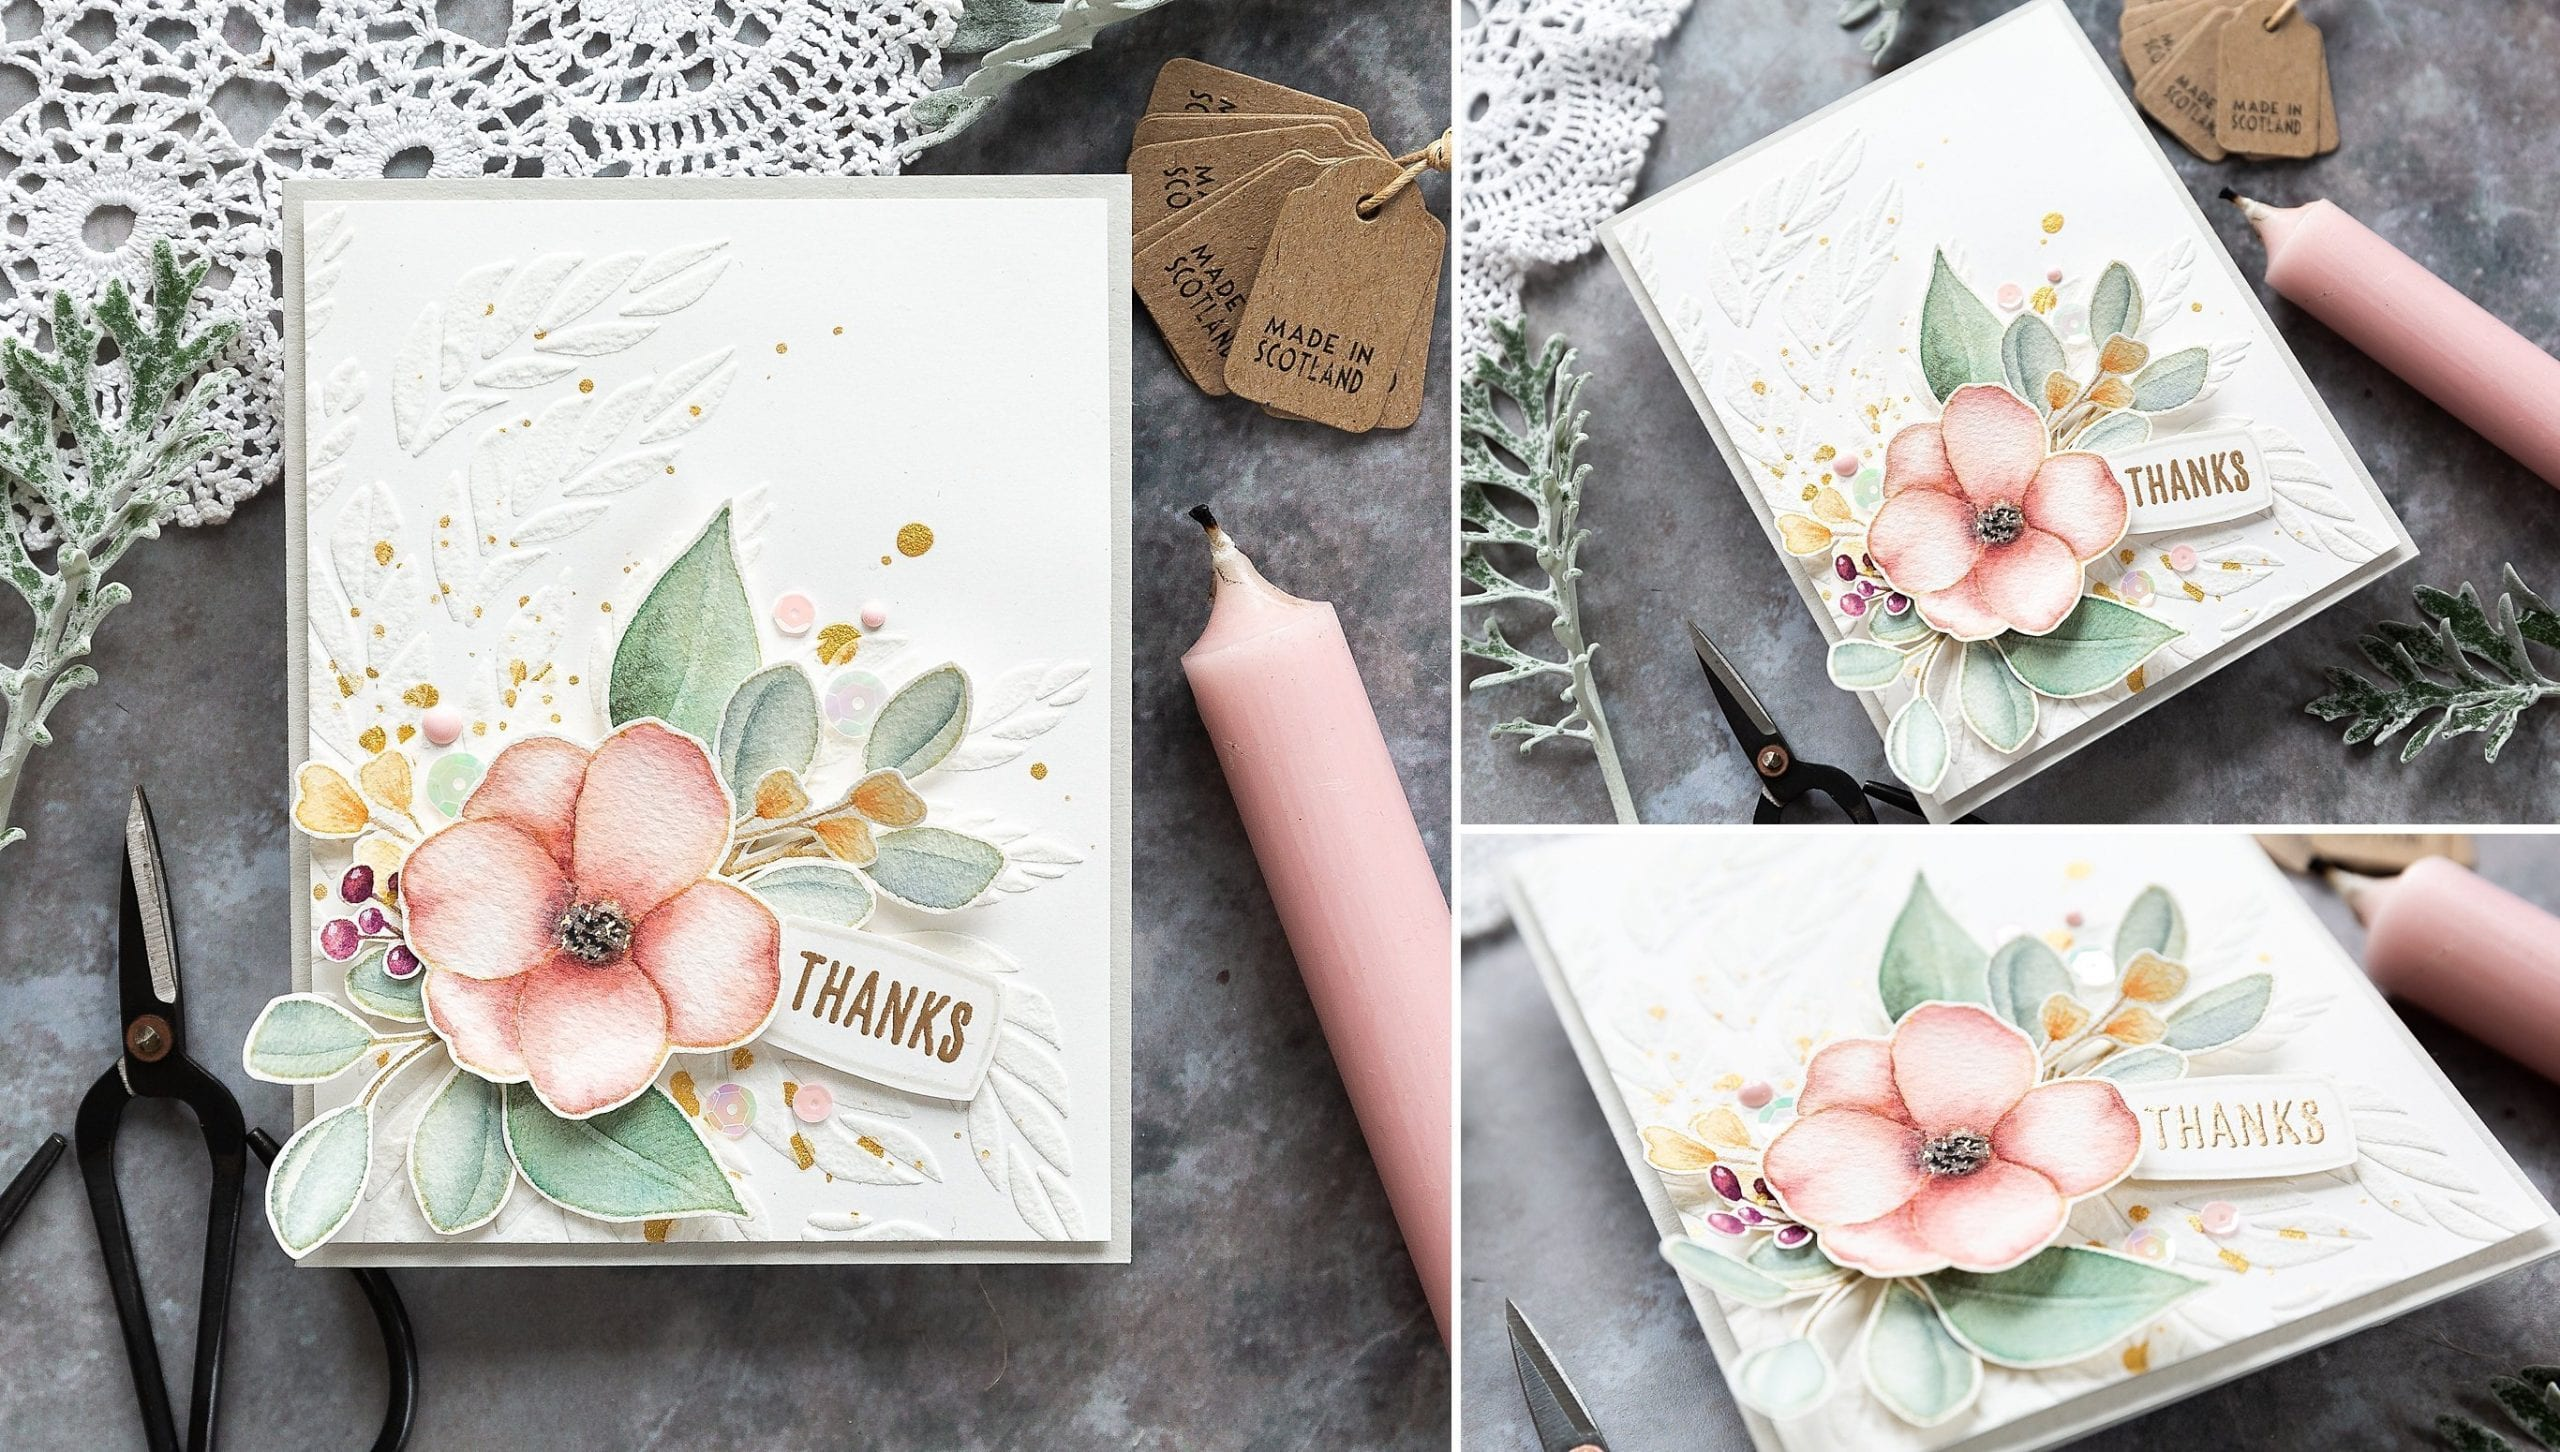 Adding dimension - watercoloured floral handmade card by Debby Hughes using supplies from Simon Says Stamp.